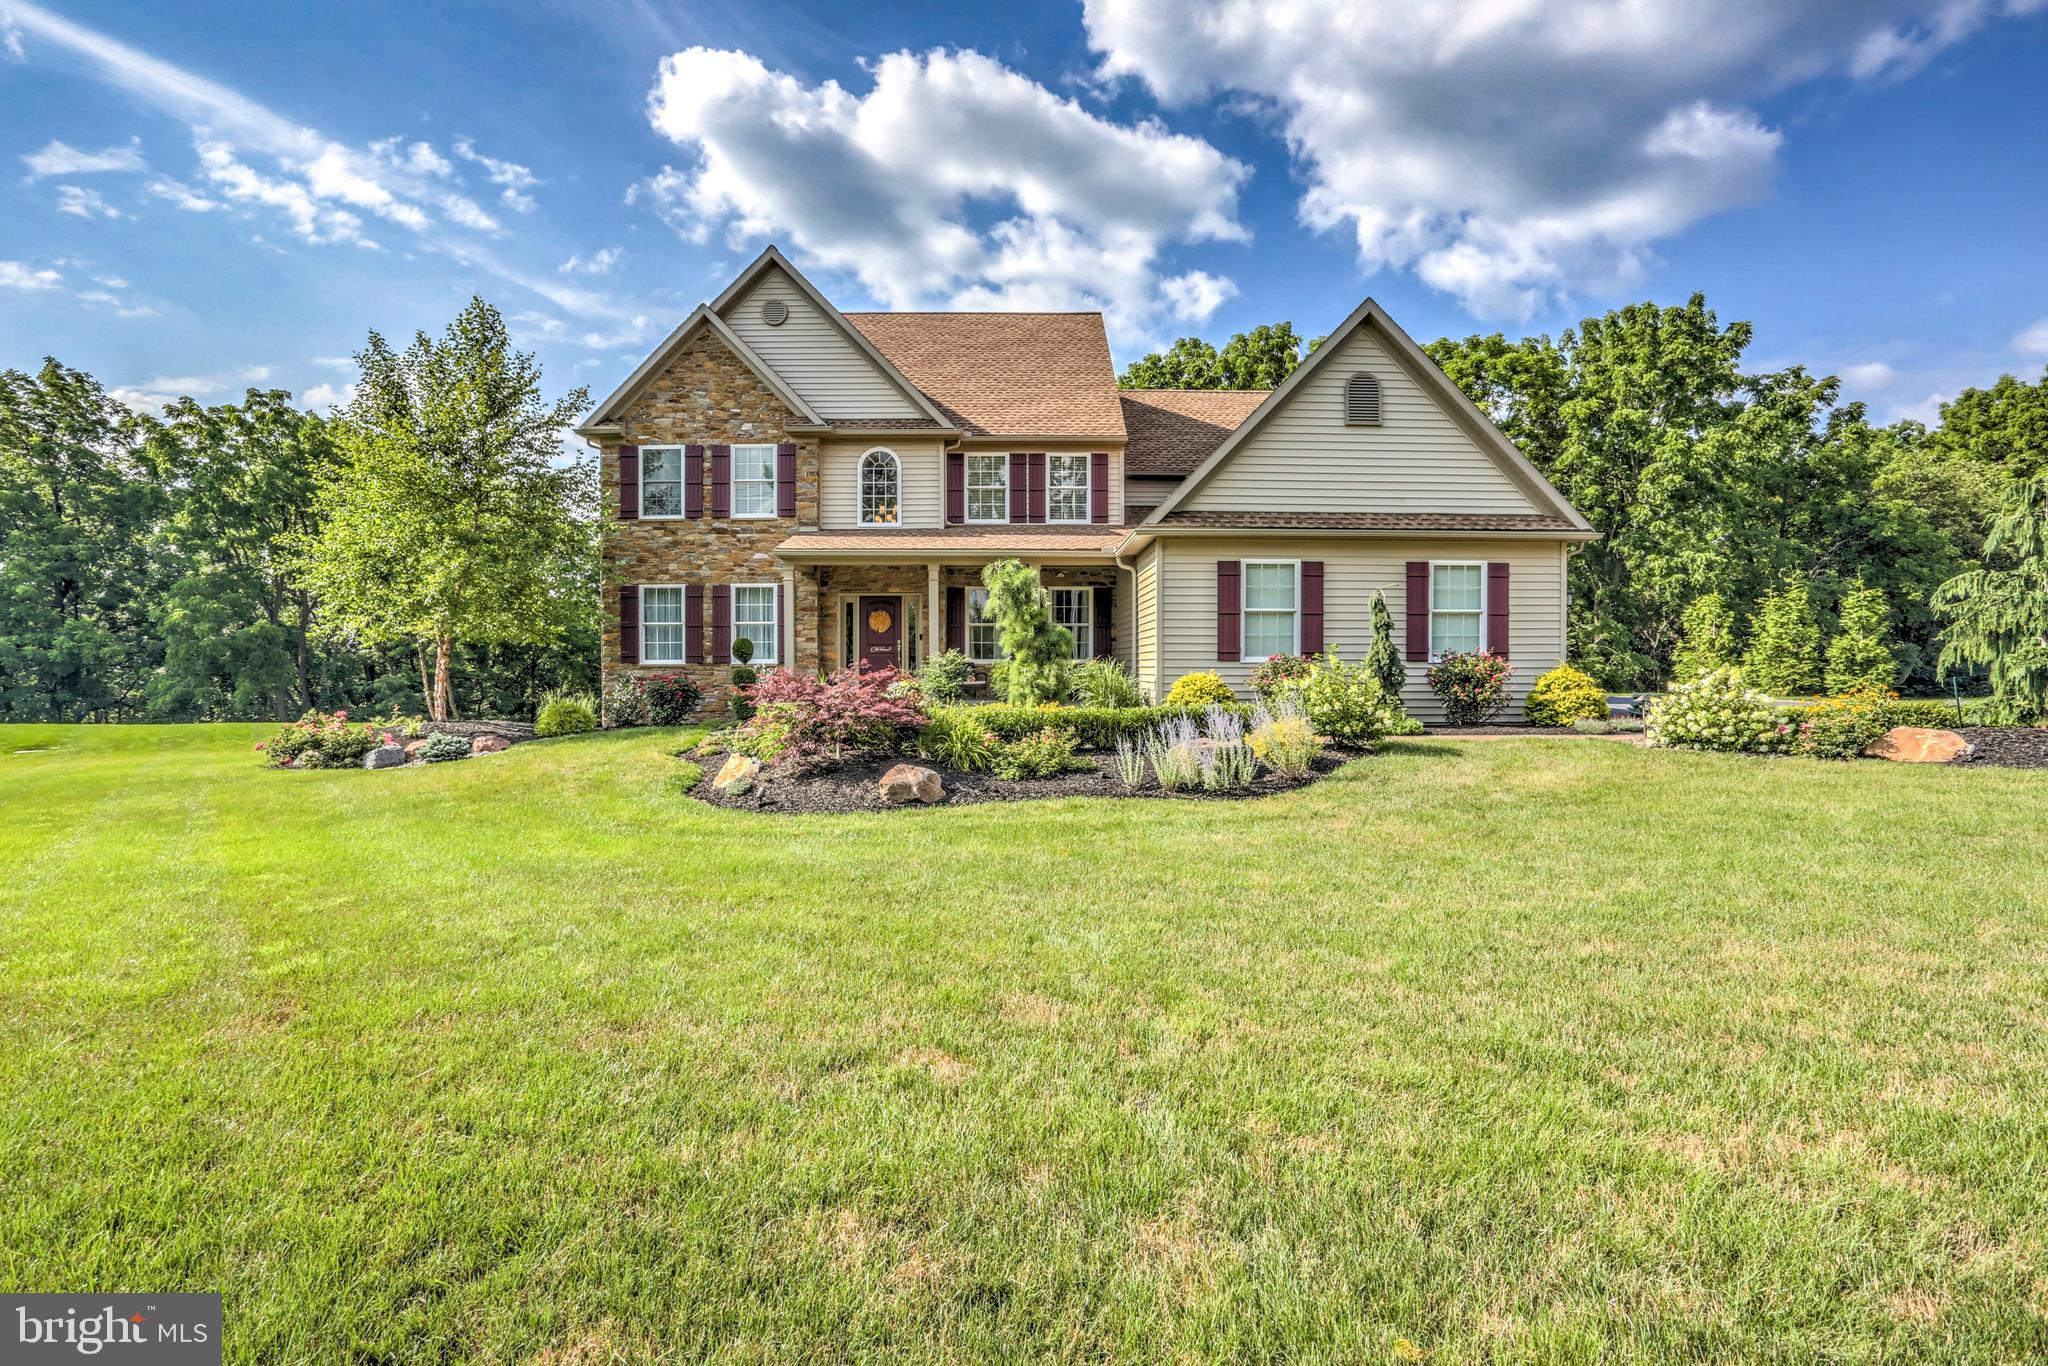 37 WOOLTOWN ROAD, WERNERSVILLE, PA 19565